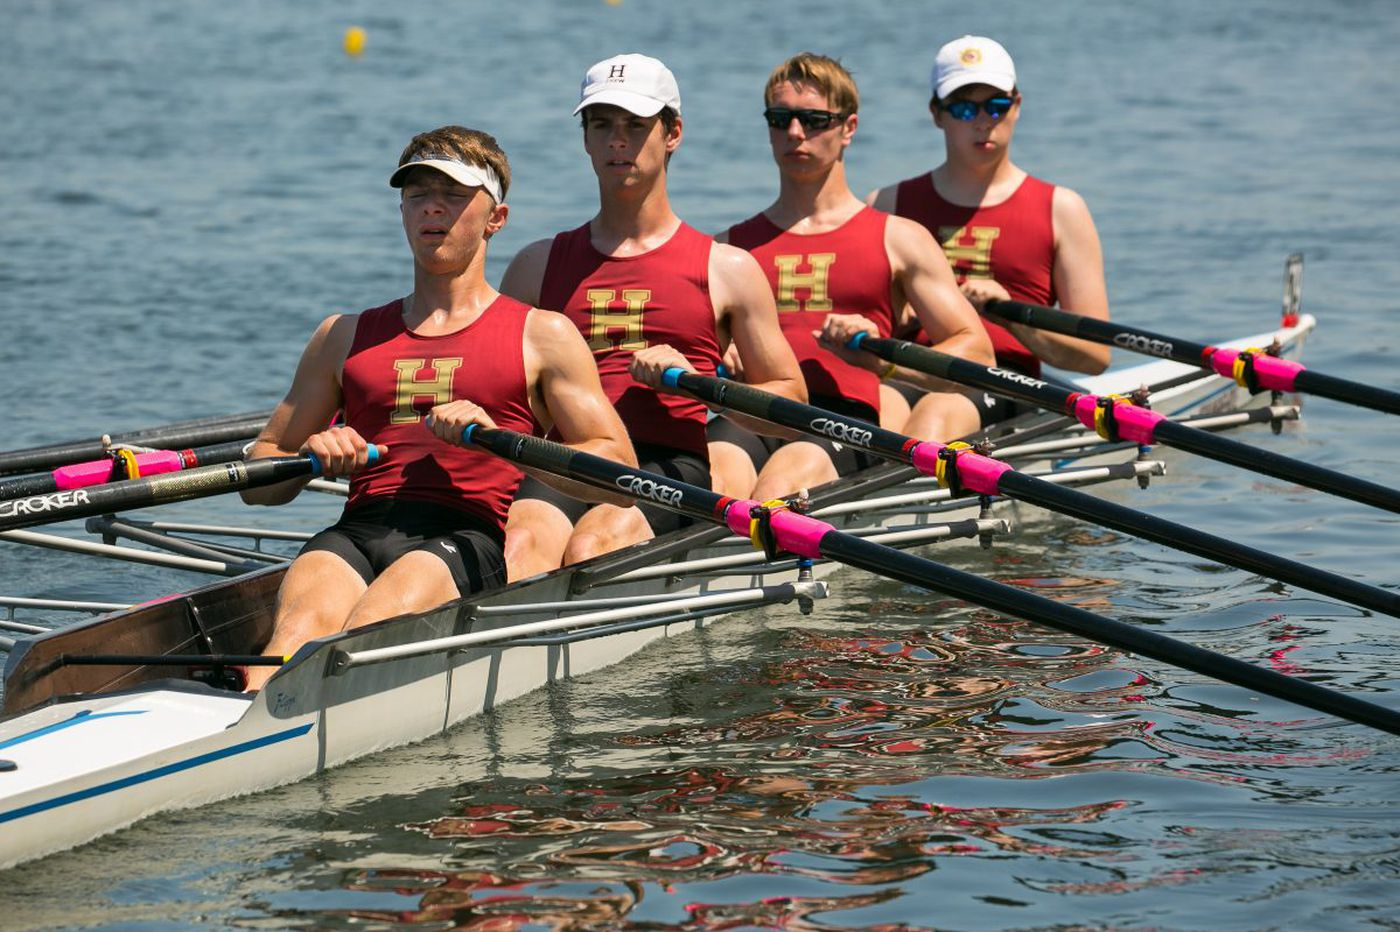 Stotesbury Cup Regatta moved to Cooper River due to safety concerns